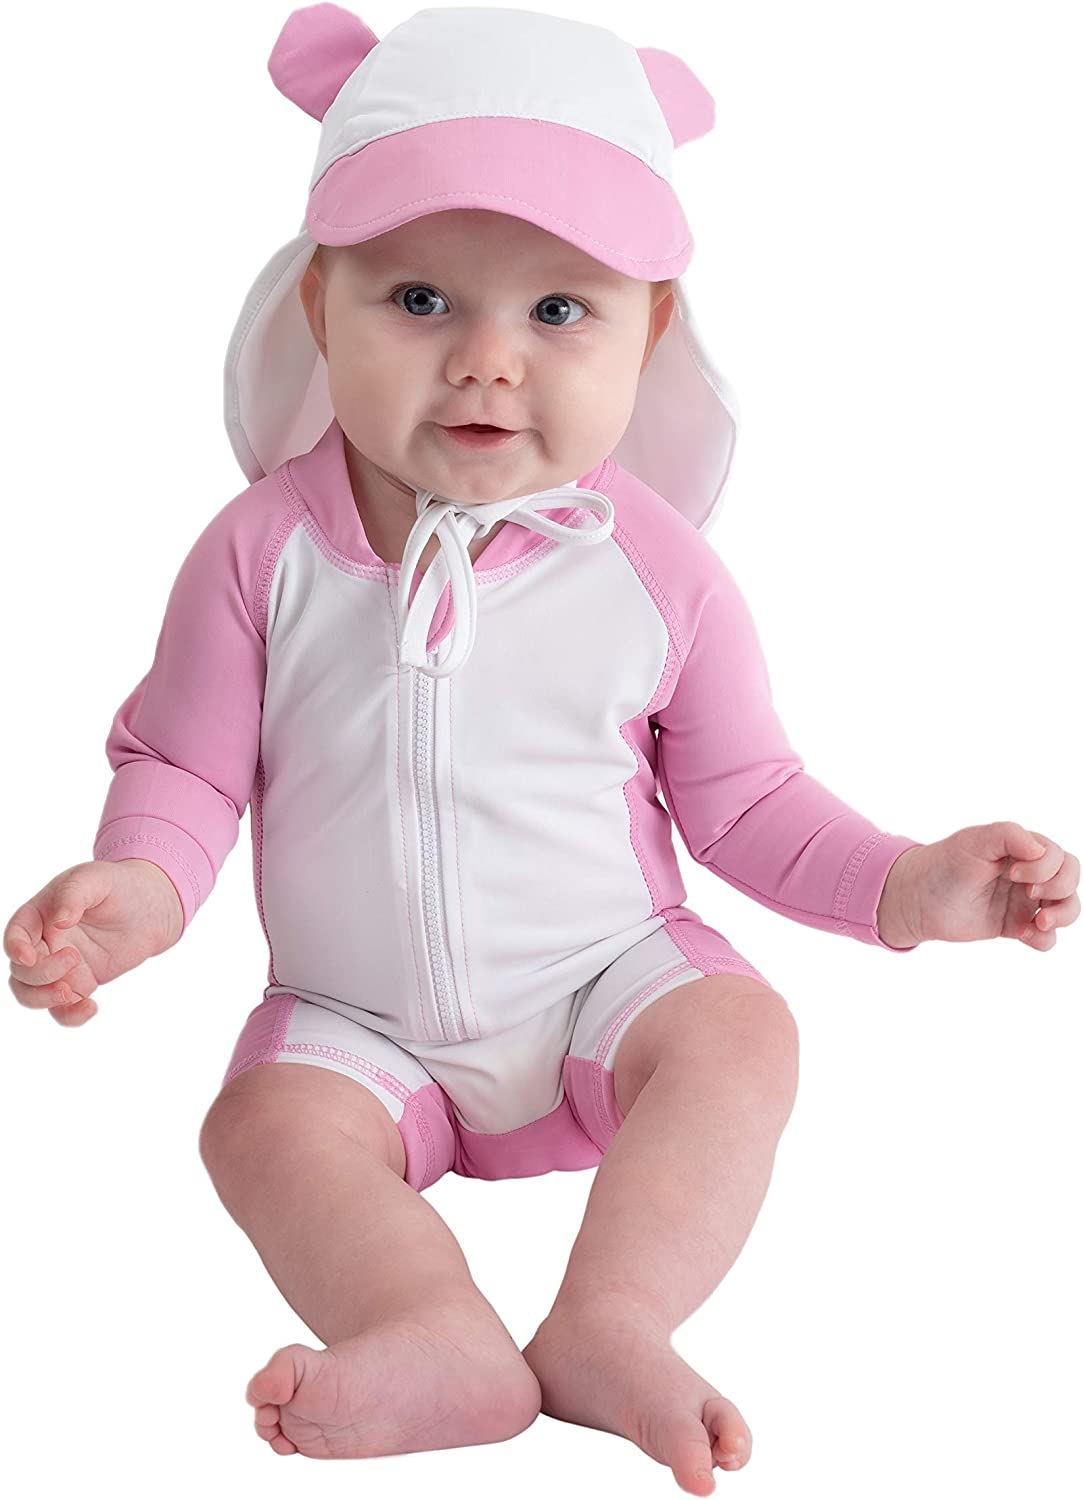 UPF 50 Cuddle Club Baby and Toddler One-Piece Swimsuit All-Day UV Protection Infant Sunsuit